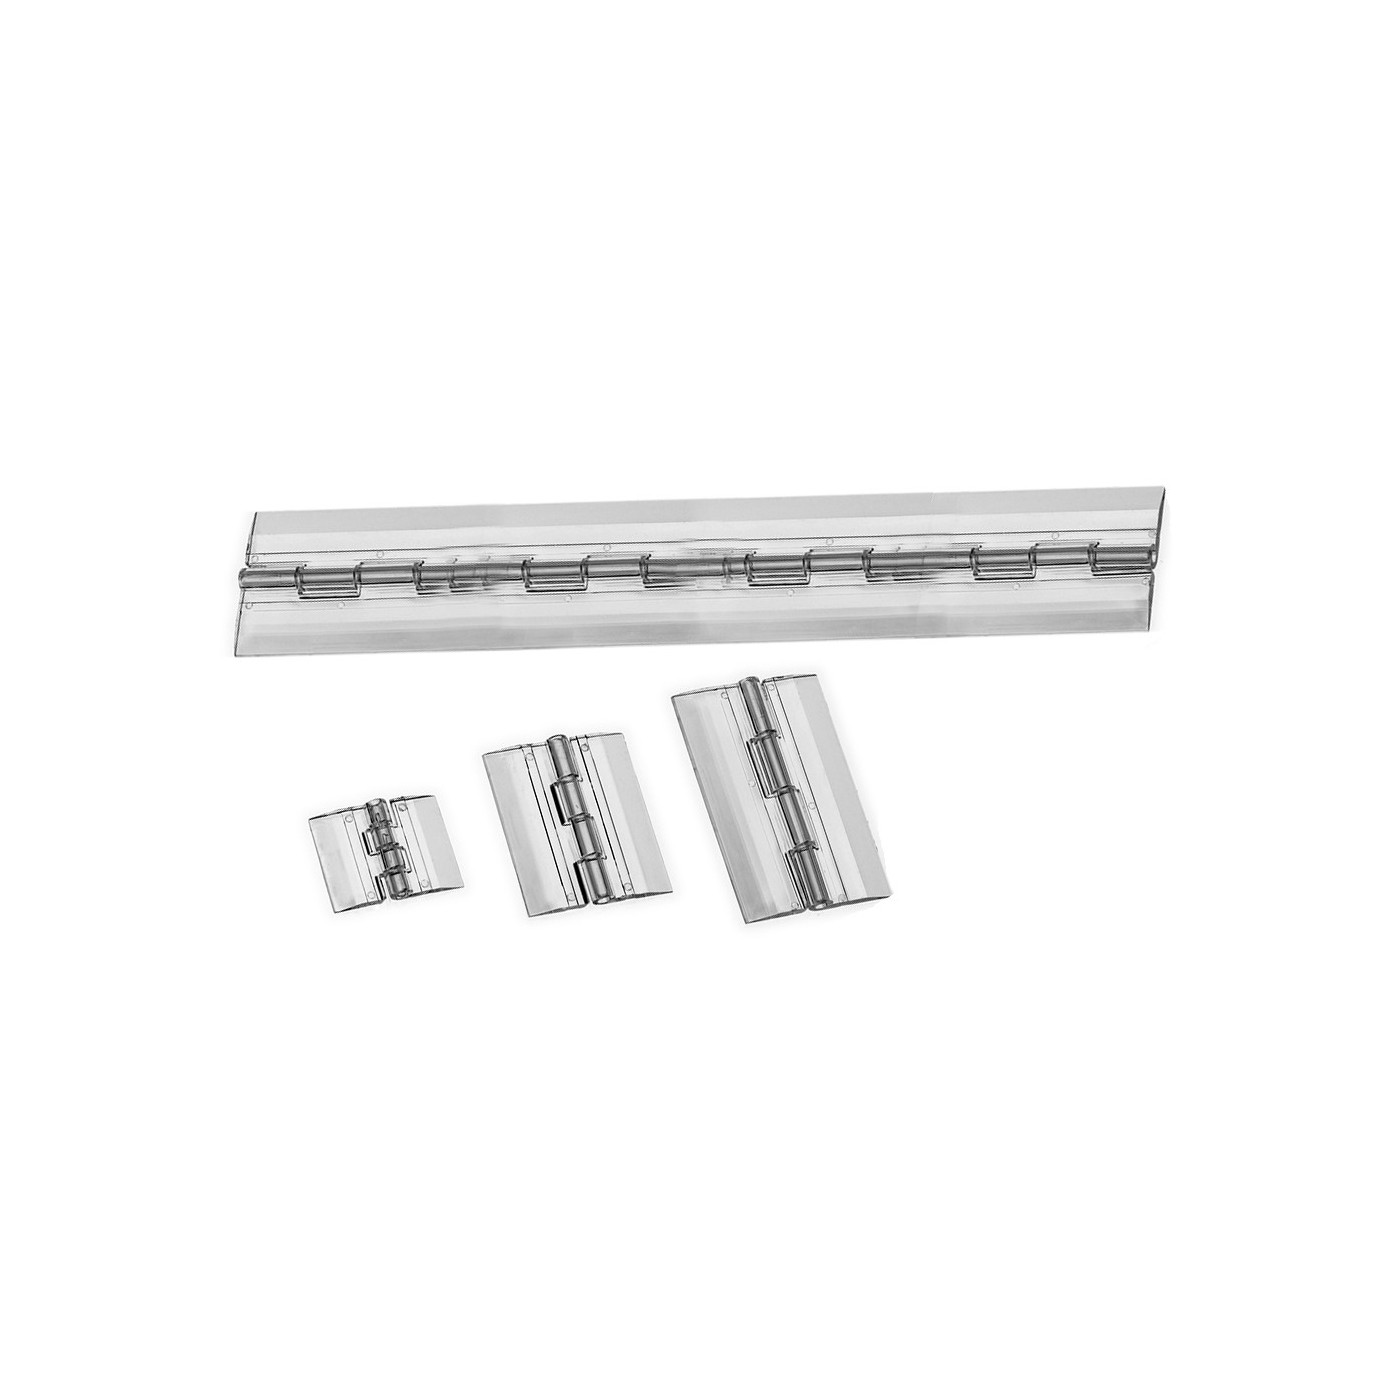 Set of 25 plastic hinges, transparent, 45x35 mm  - 1